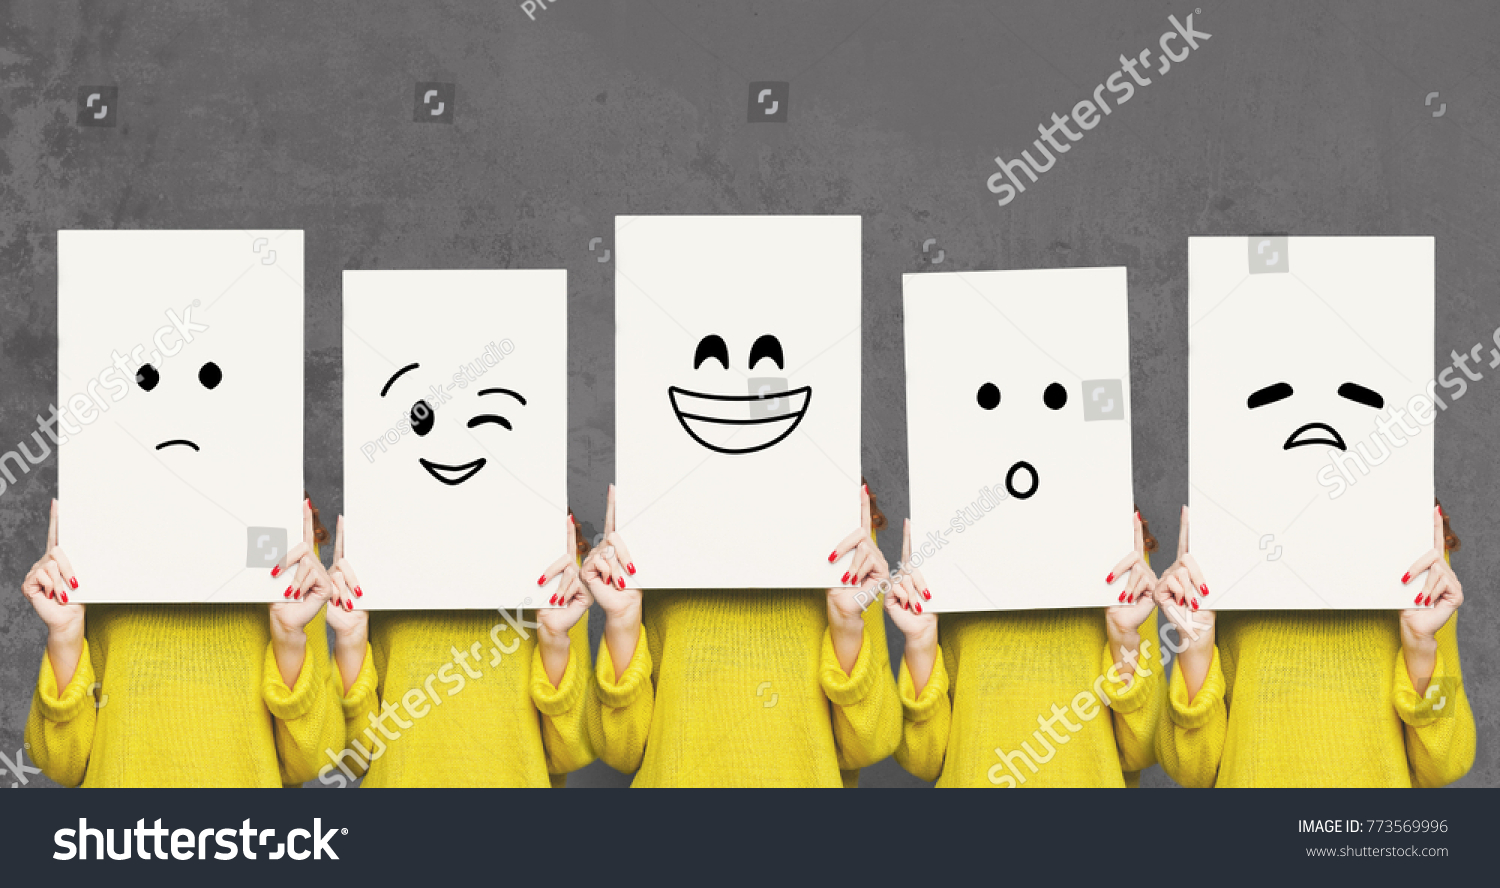 Emotions set. Girl hiding face behind signboard with drawn smileys. Collage of indifferent, winking, happy, surprised, and sad emoticons. #773569996